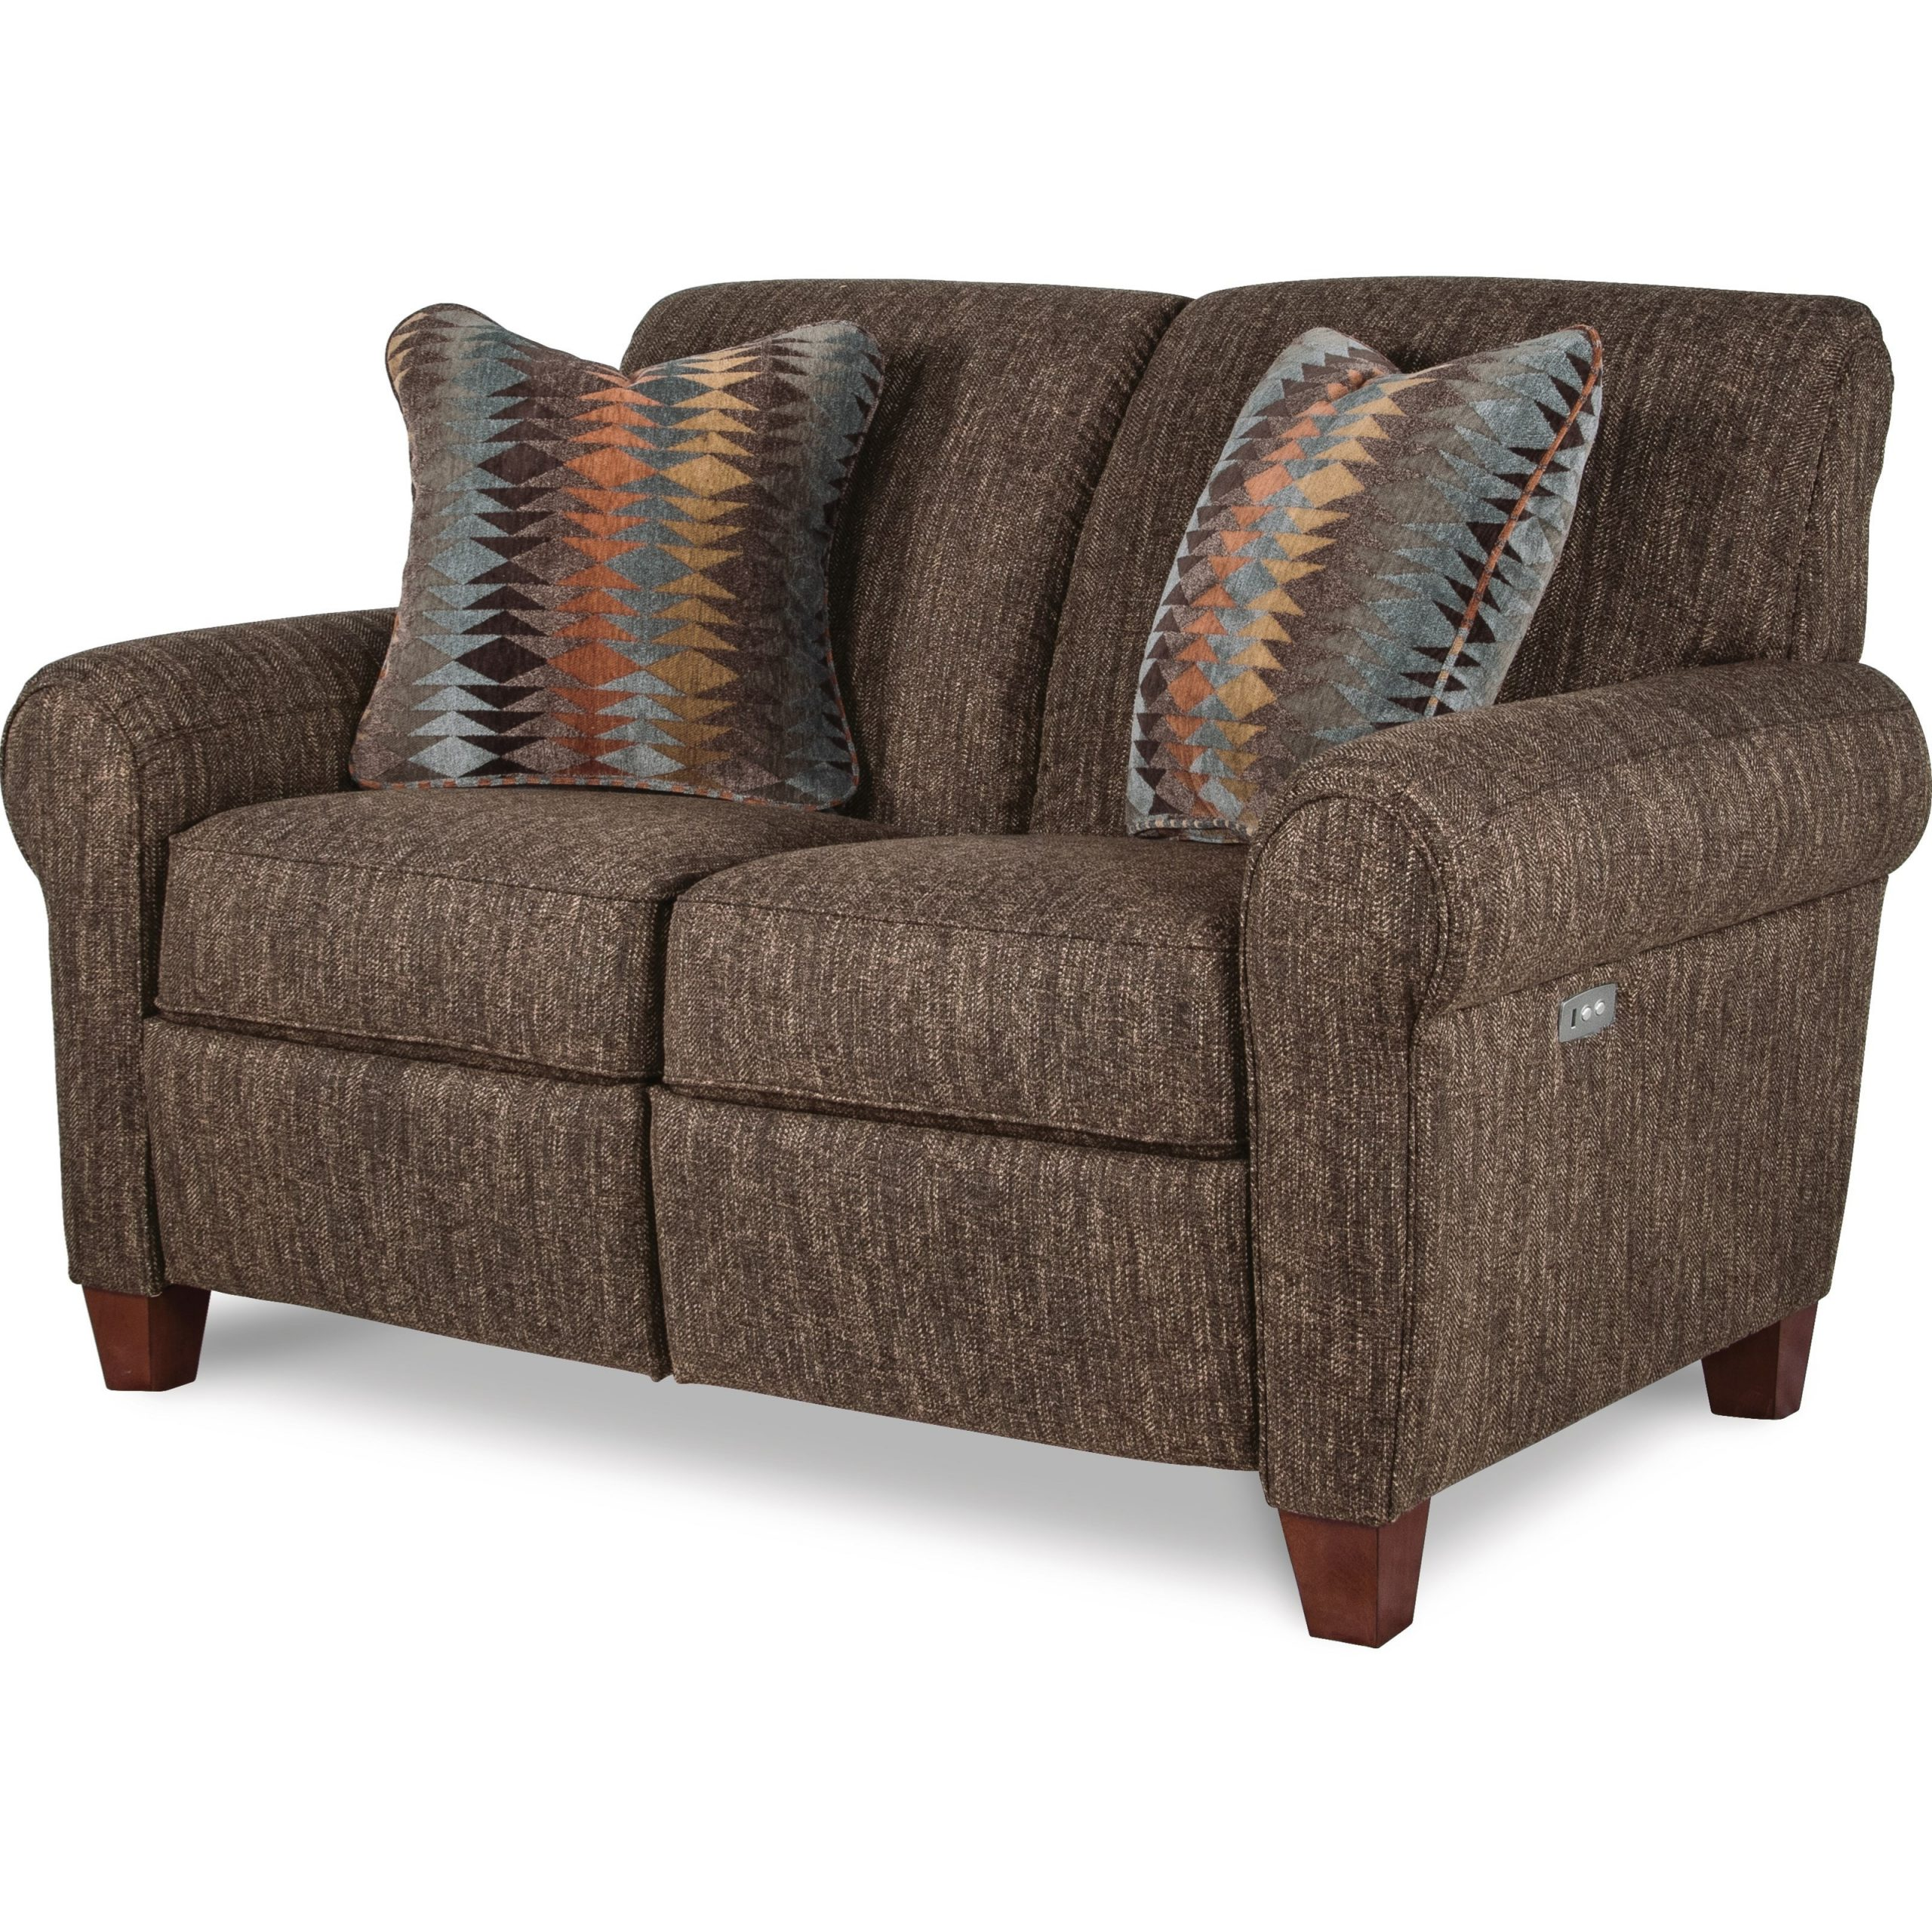 La Z Boy Bennett Duo™ Power Reclining Loveseat With Usb In Best And Newest Bennett Power Reclining Sofas (View 1 of 15)